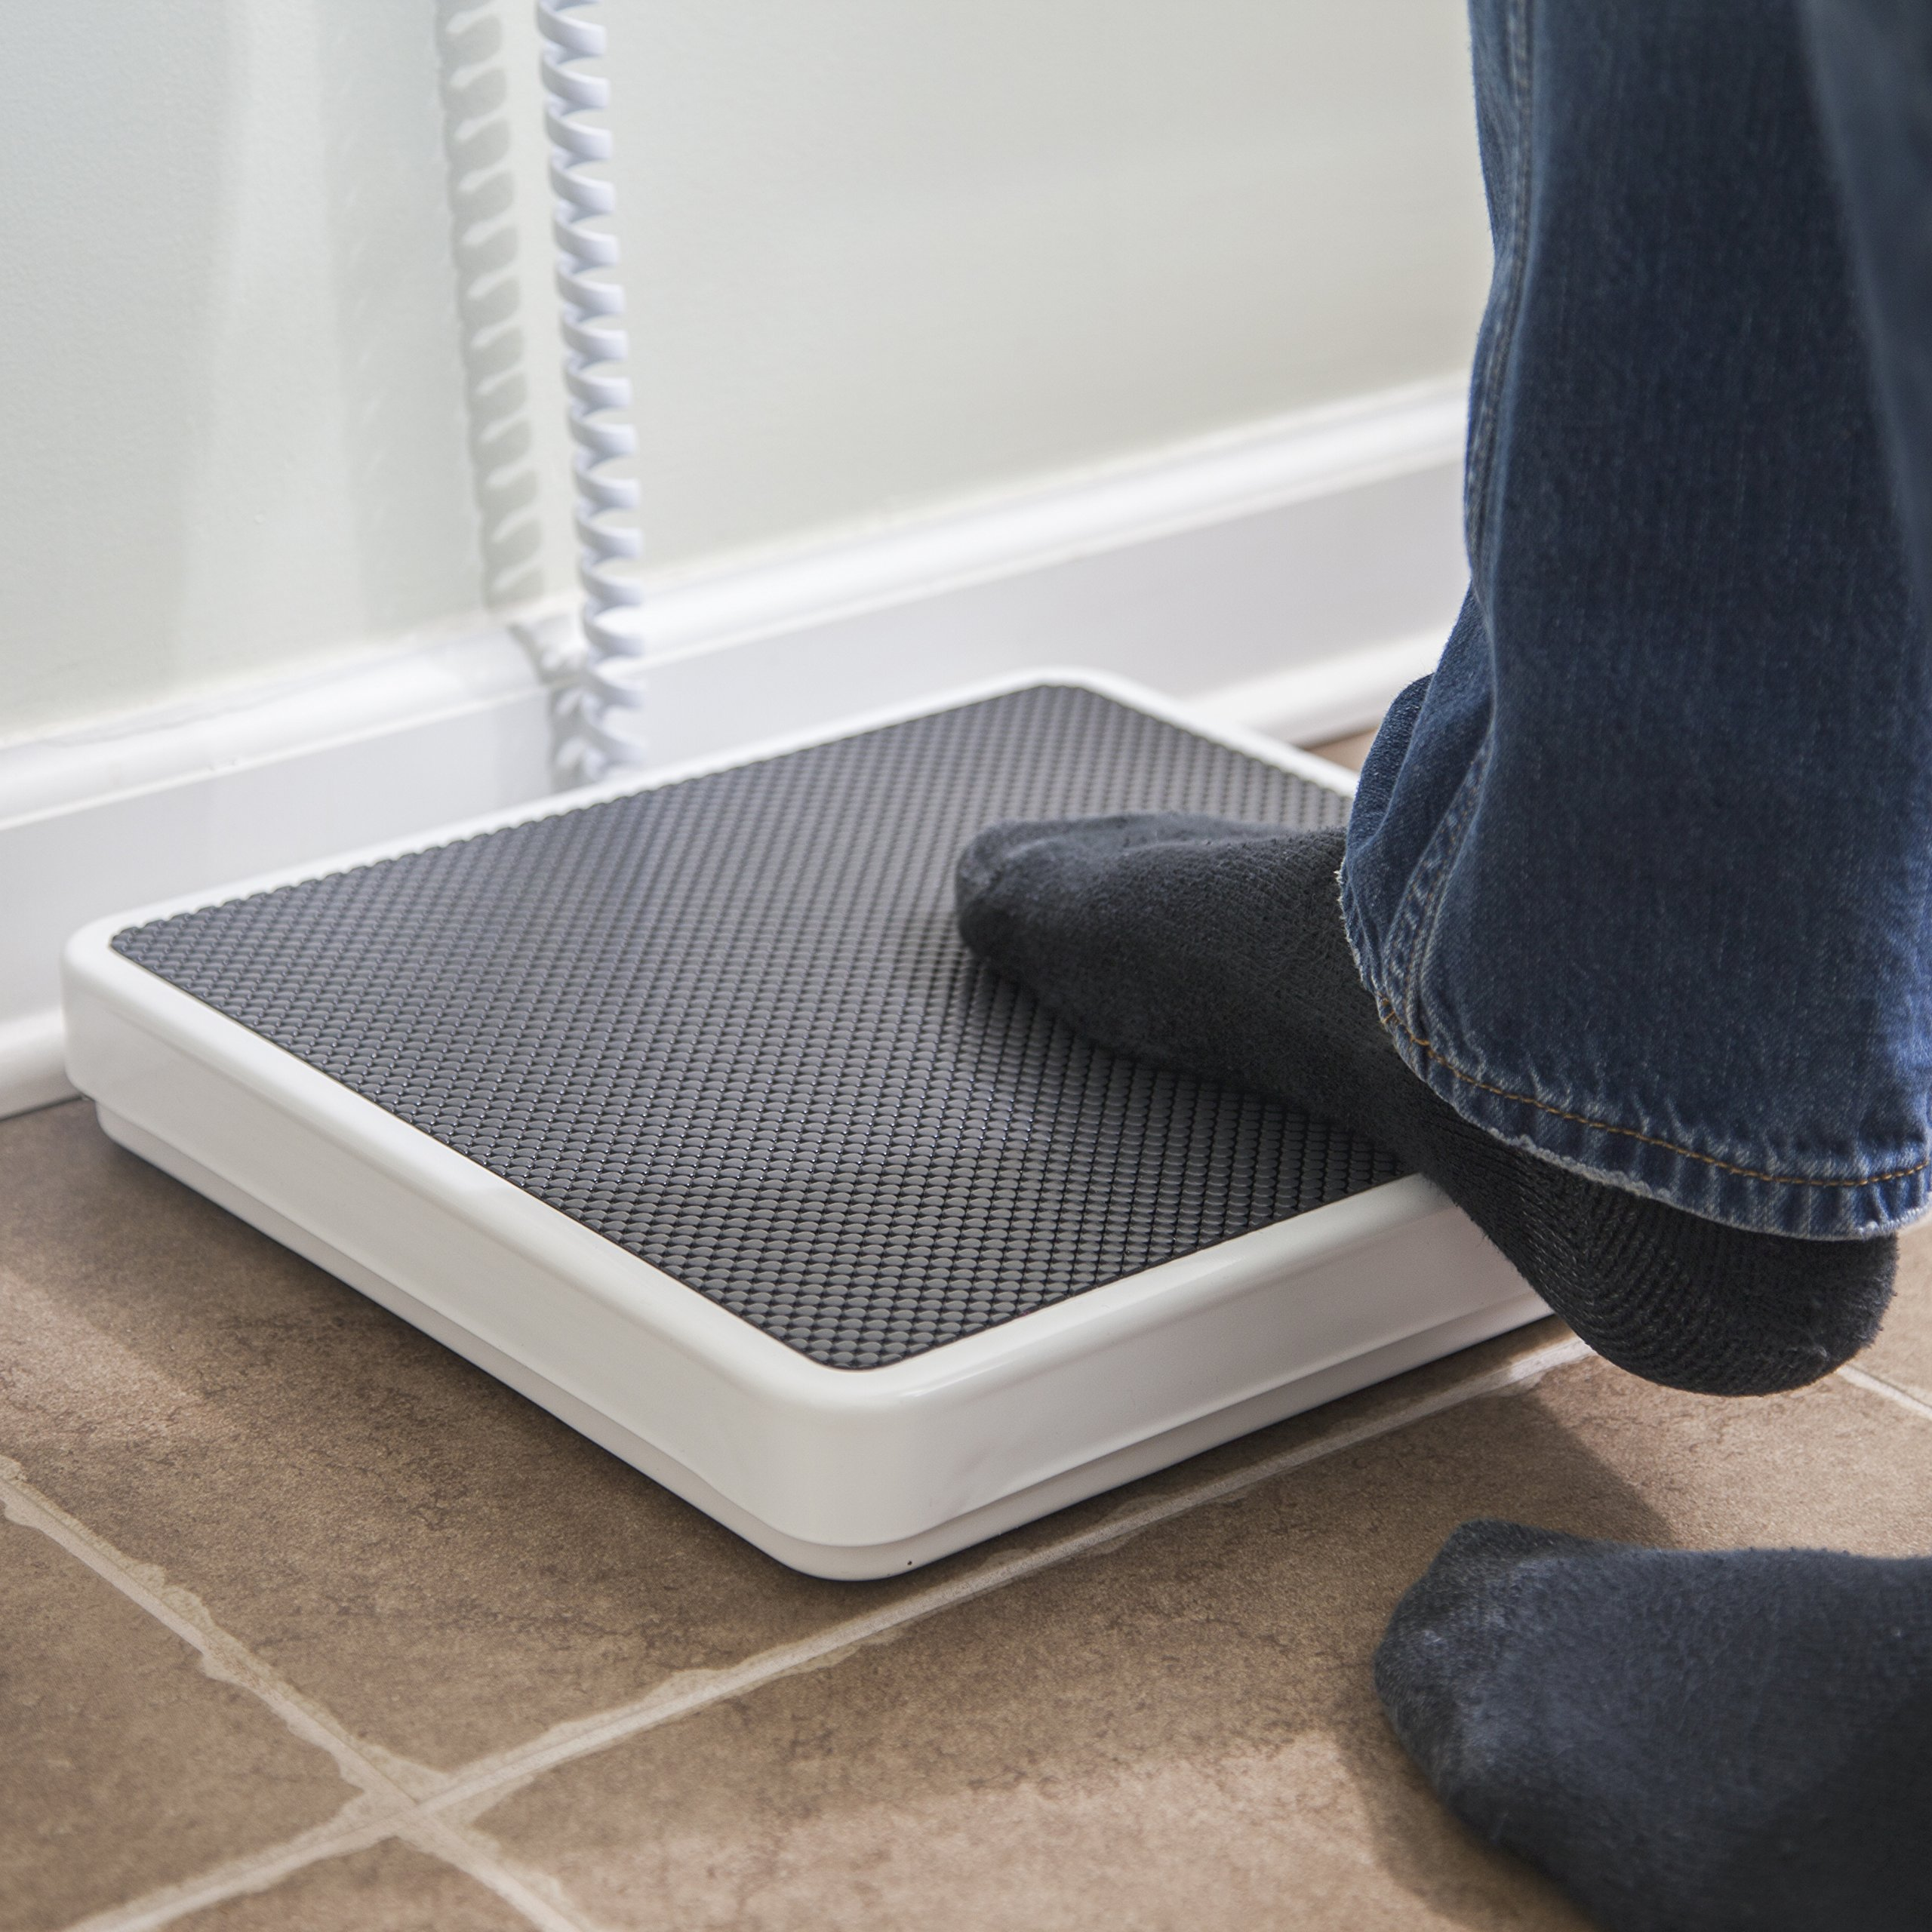 Medical Heavy Weight Floor Scale: Digital Easy Read and High Capacity Health, Fitness and Physician Portable Scale with Battery, AC Adapter & Bag - Pound and Kilogram Settings - 550 lb / 249 Kg Limit by Patient Aid (Image #5)